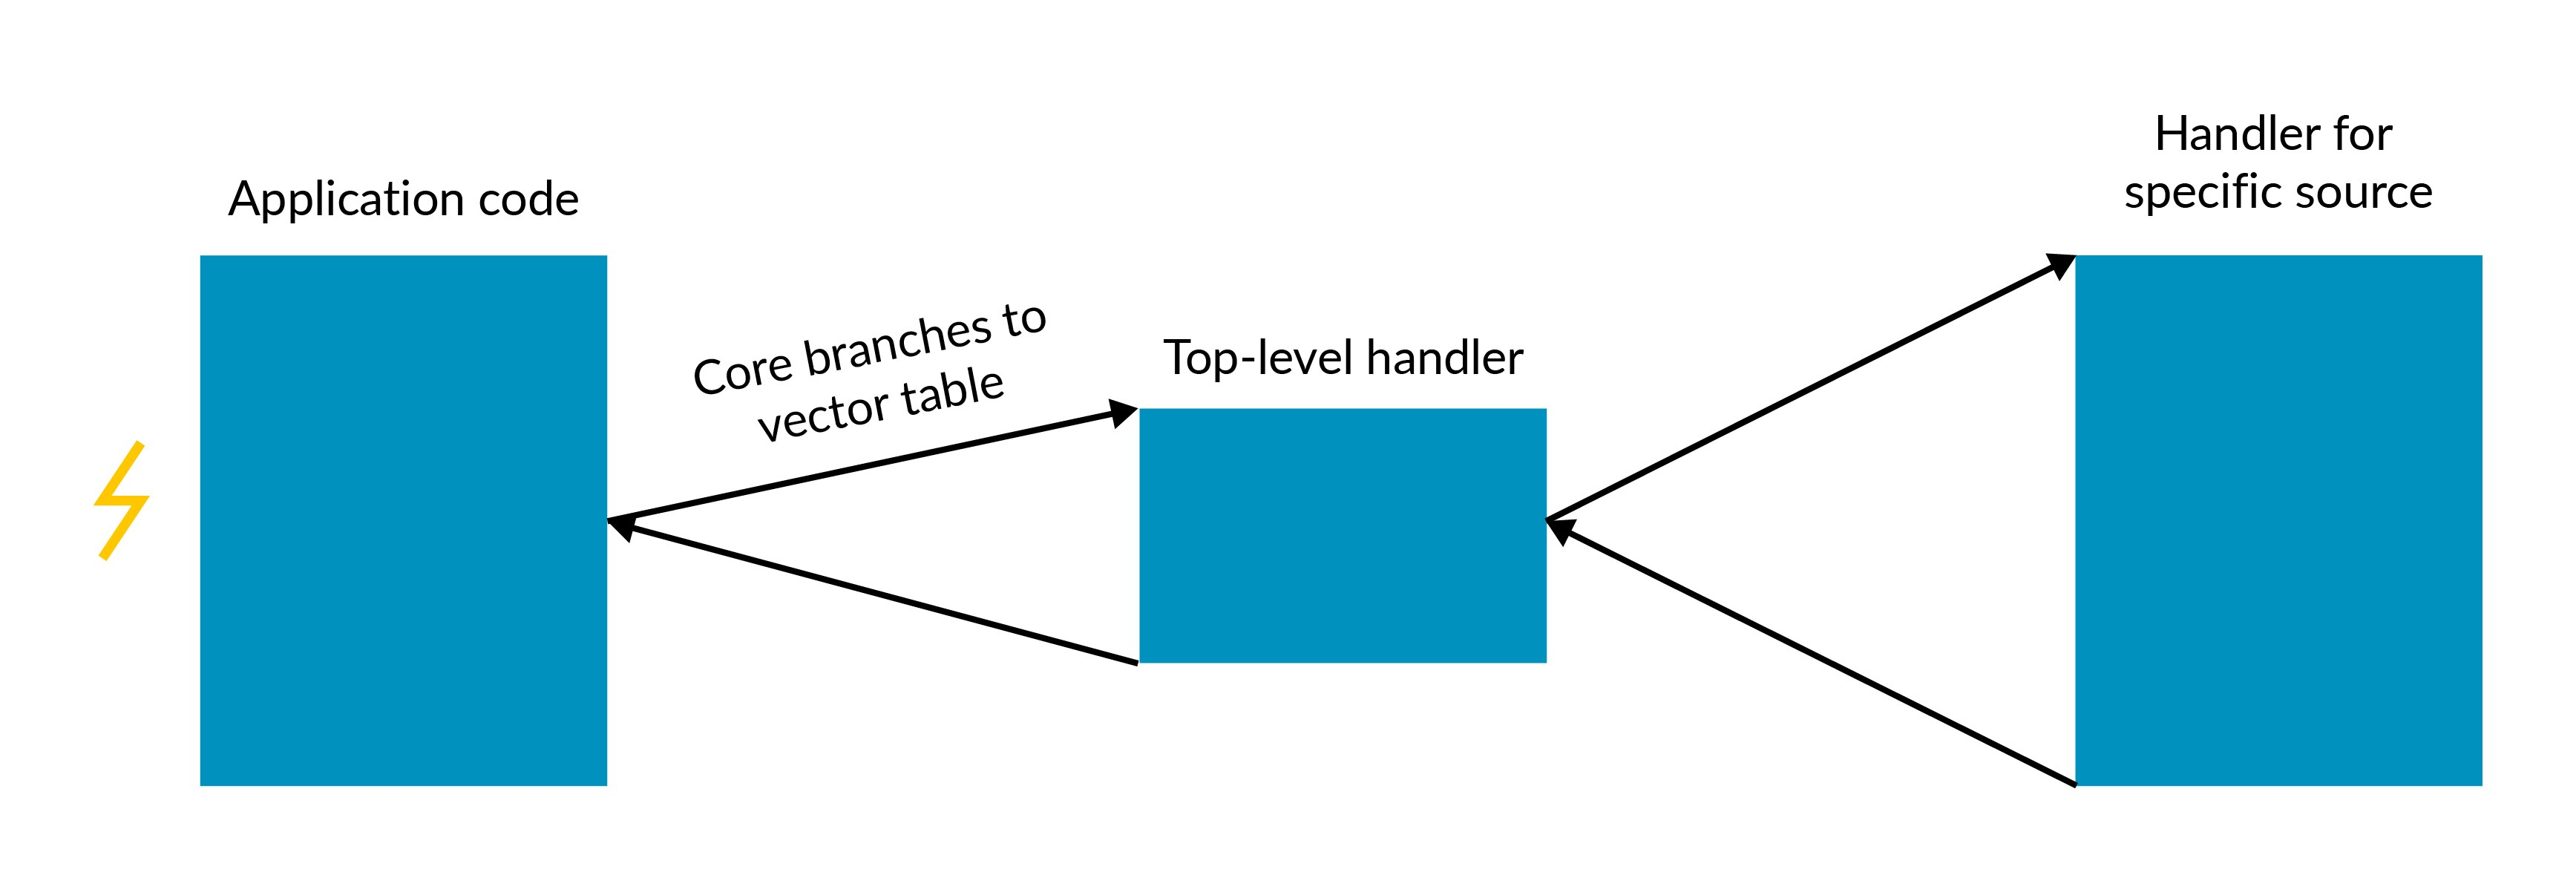 This image relates to handling exceptions in Armv8-A.